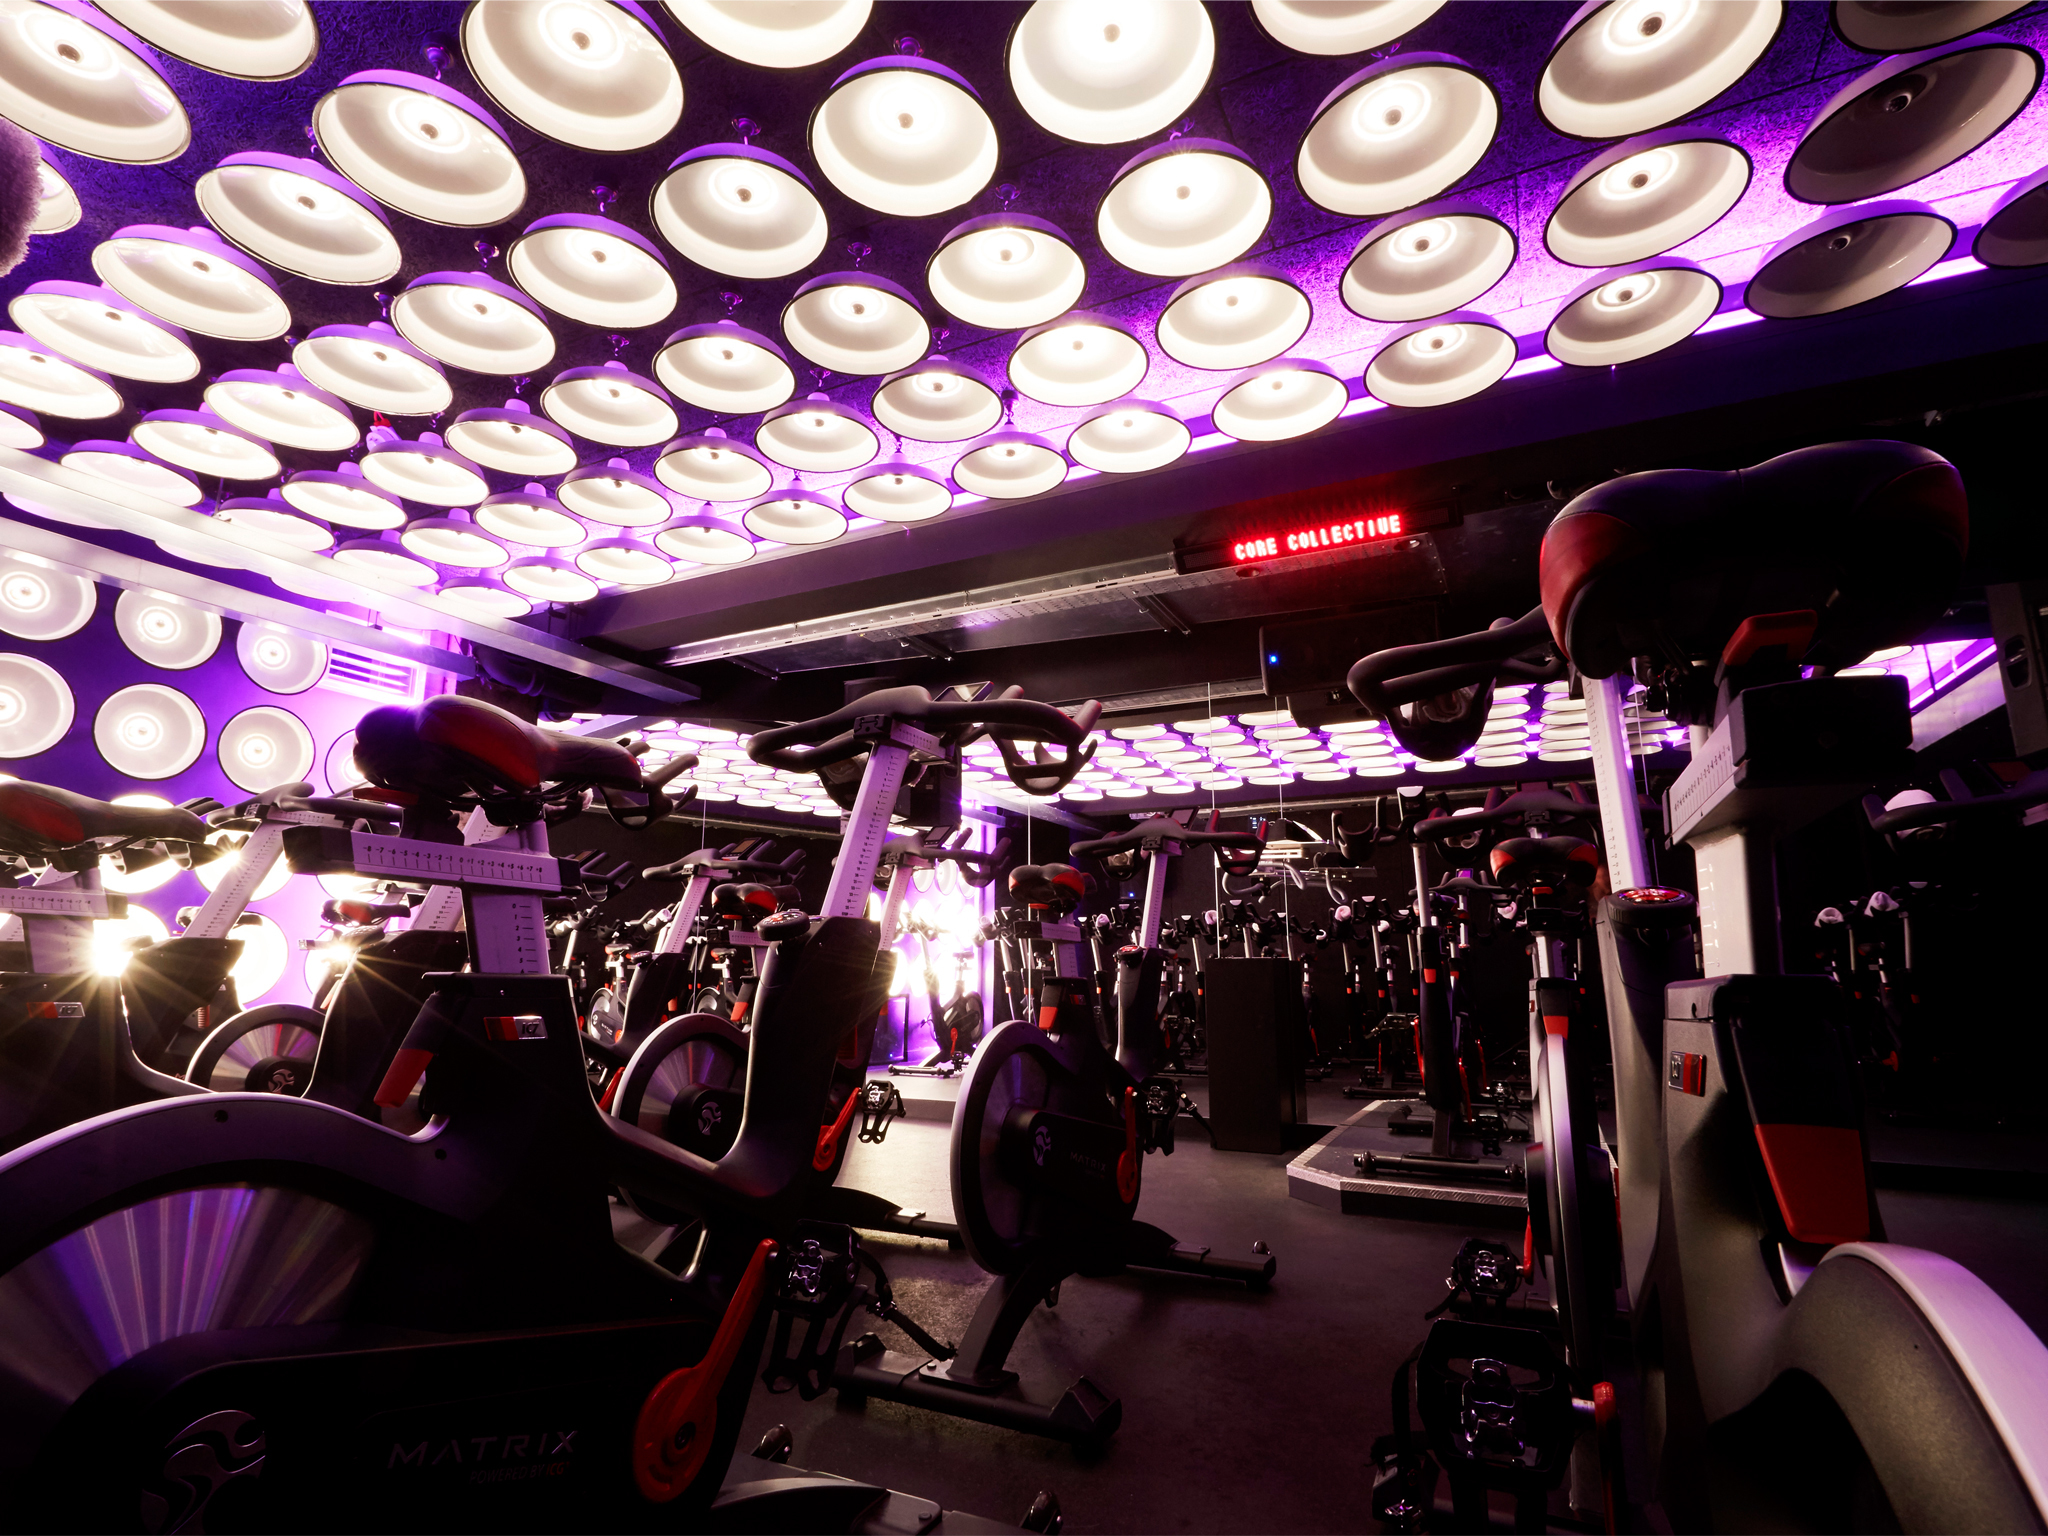 bef8a35df36 Seriously good spinning classes in London - Time Out London